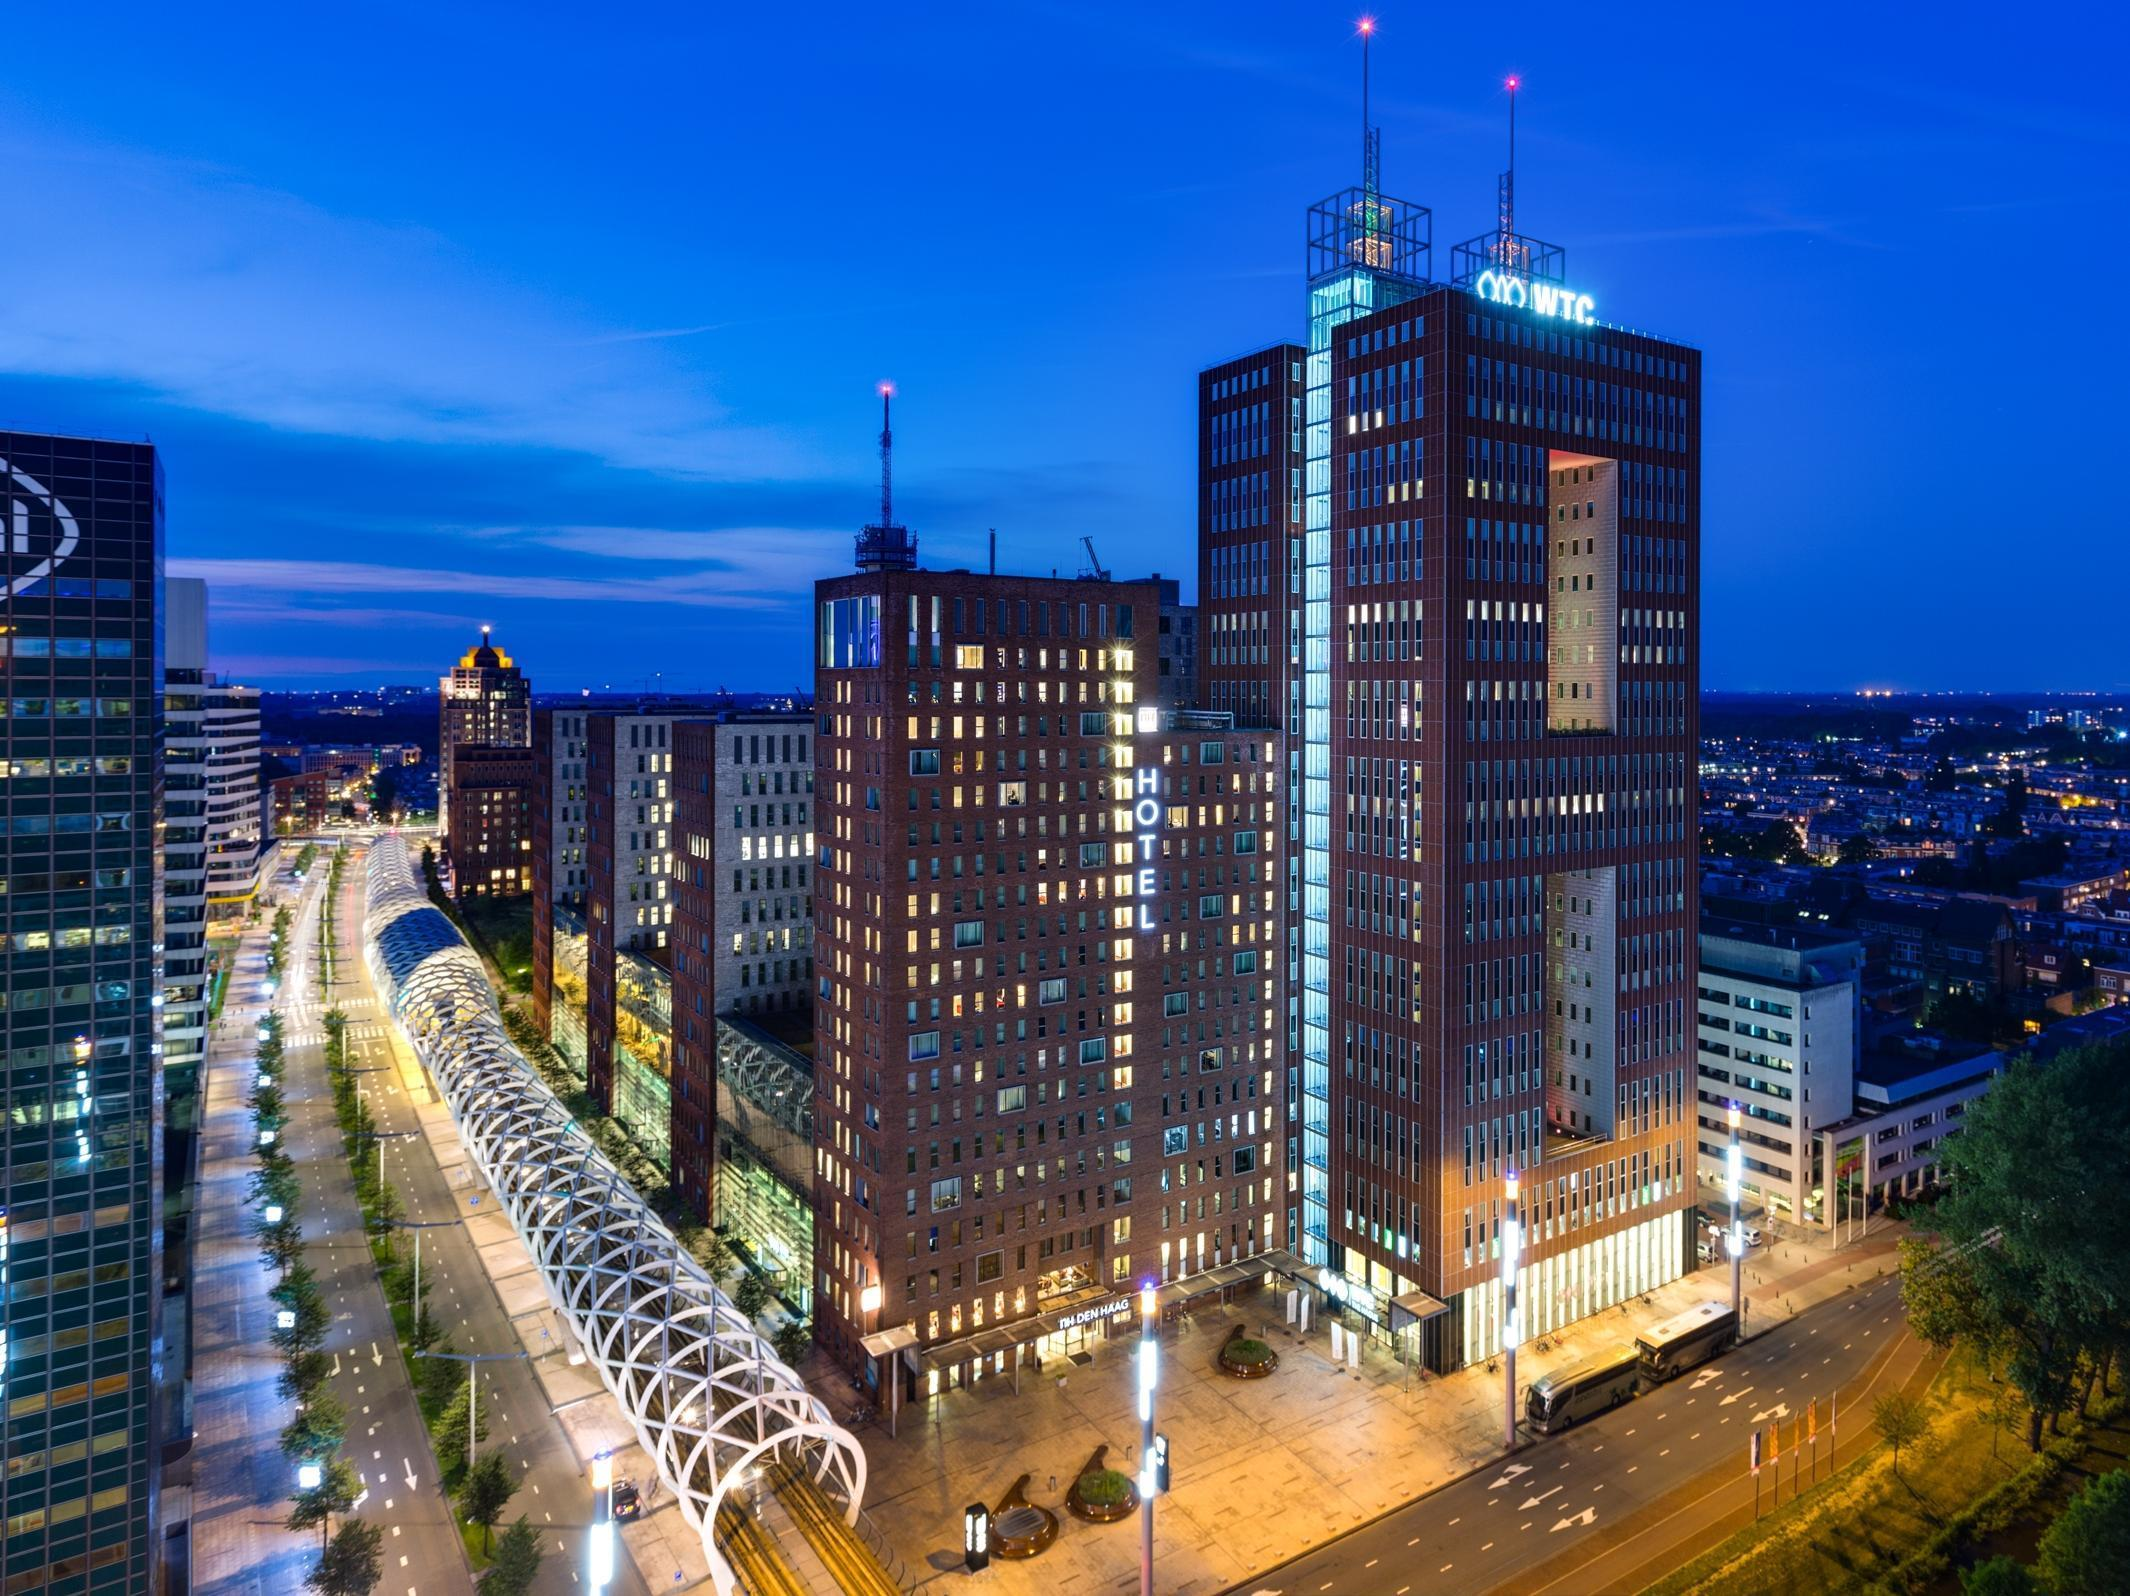 NH Den Haag Hotel The Republic of Equatorial Guninea FAQ 2017, What facilities are there in NH Den Haag Hotel The Republic of Equatorial Guninea 2017, What Languages Spoken are Supported in NH Den Haag Hotel The Republic of Equatorial Guninea 2017, Which payment cards are accepted in NH Den Haag Hotel The Republic of Equatorial Guninea , The Republic of Equatorial Guninea NH Den Haag Hotel room facilities and services Q&A 2017, The Republic of Equatorial Guninea NH Den Haag Hotel online booking services 2017, The Republic of Equatorial Guninea NH Den Haag Hotel address 2017, The Republic of Equatorial Guninea NH Den Haag Hotel telephone number 2017,The Republic of Equatorial Guninea NH Den Haag Hotel map 2017, The Republic of Equatorial Guninea NH Den Haag Hotel traffic guide 2017, how to go The Republic of Equatorial Guninea NH Den Haag Hotel, The Republic of Equatorial Guninea NH Den Haag Hotel booking online 2017, The Republic of Equatorial Guninea NH Den Haag Hotel room types 2017.